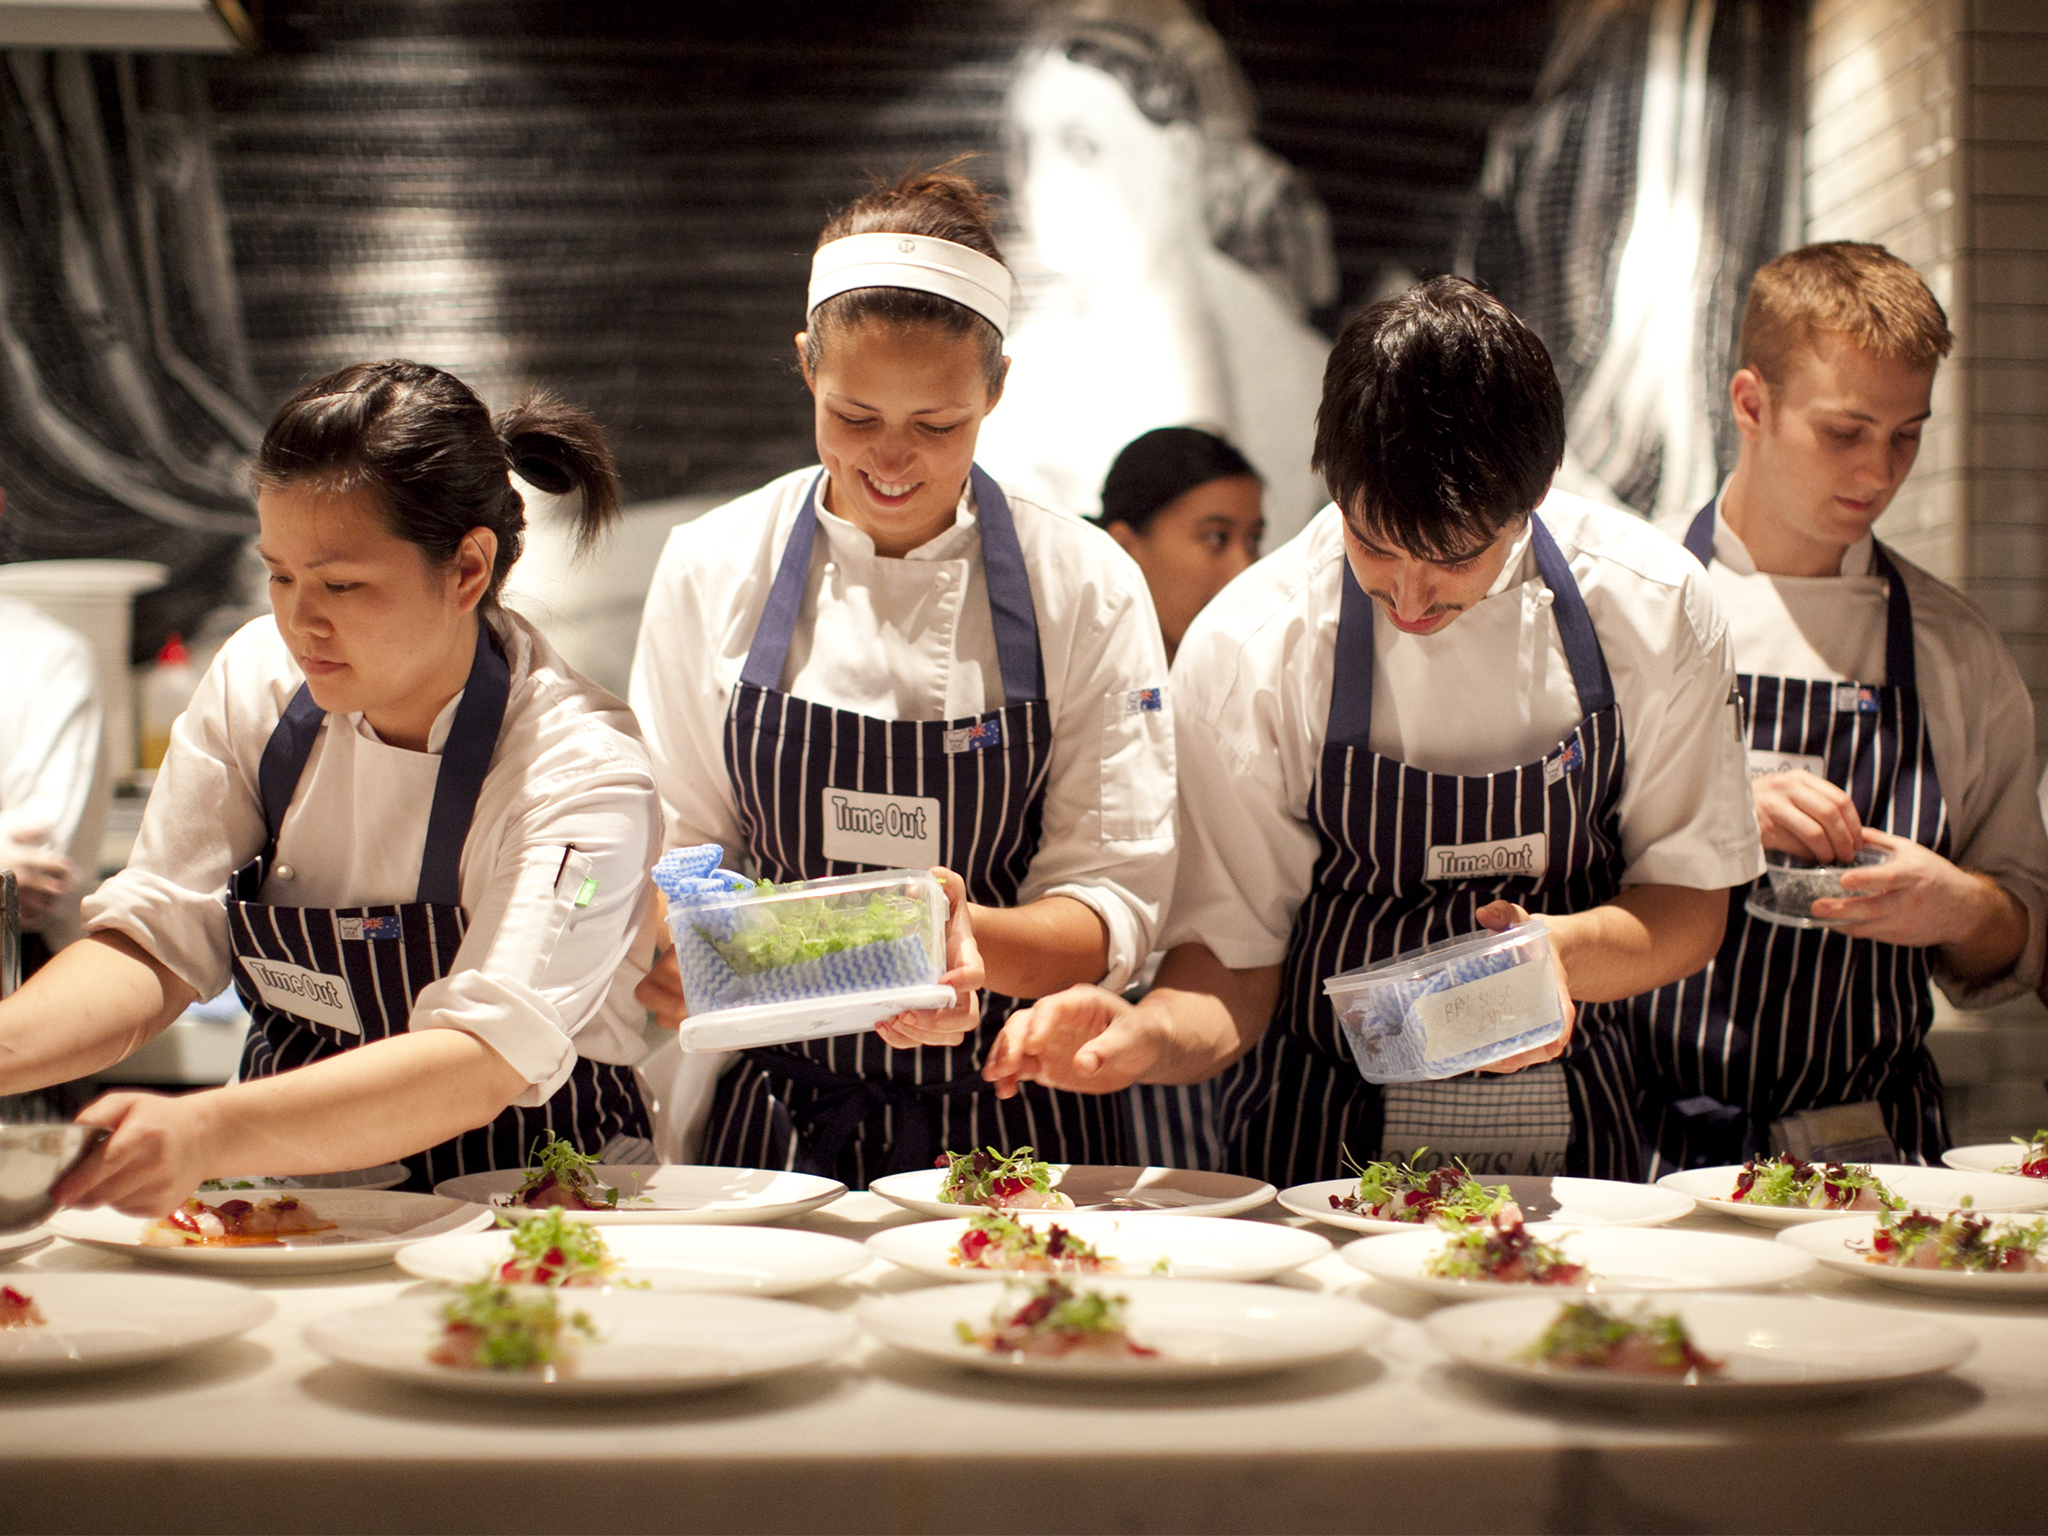 Win a golden ticket to the Time Out Chef Showdown